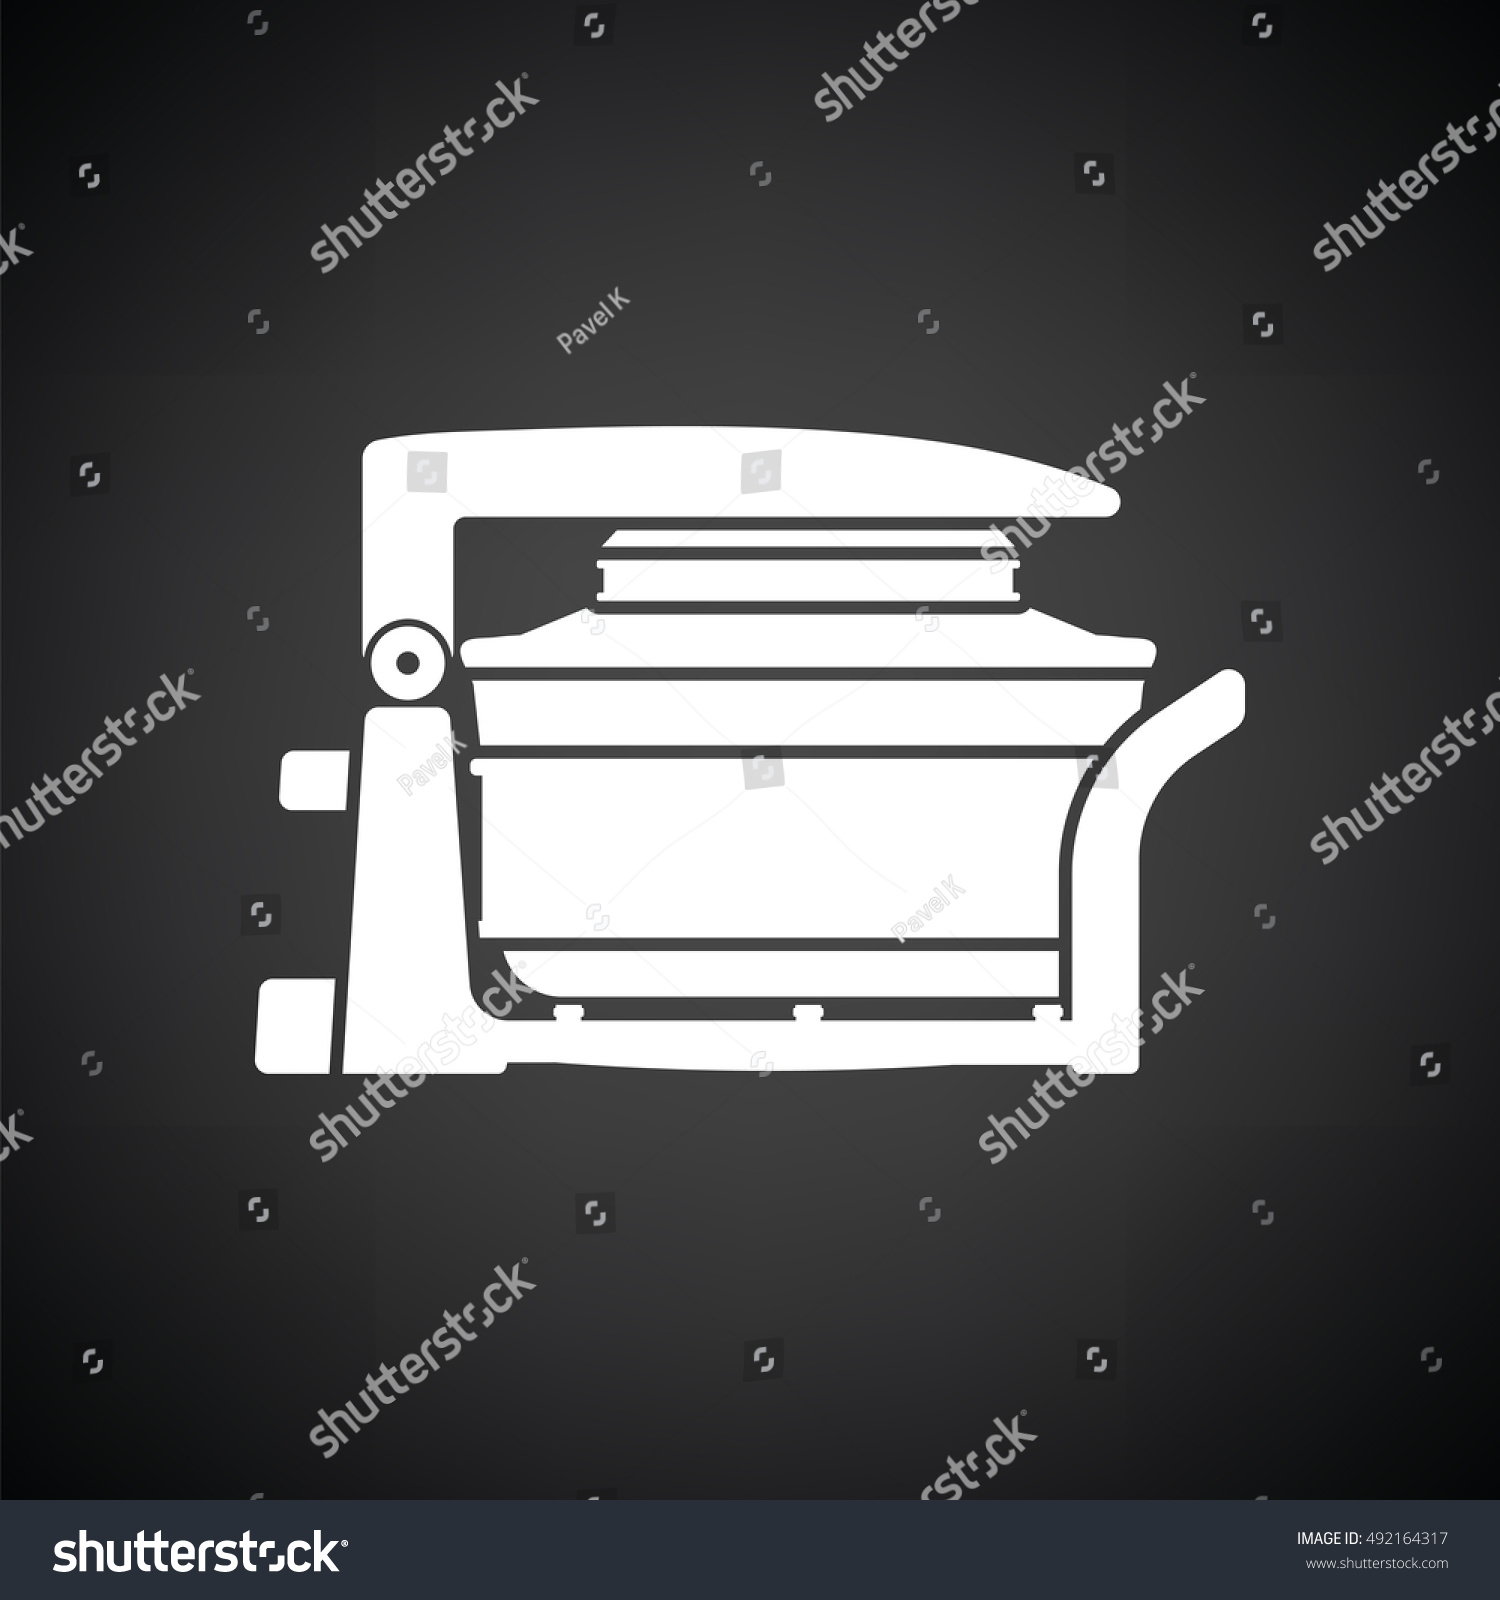 Electric Convection Oven Icon Black Background Stock Vector 1500x1600